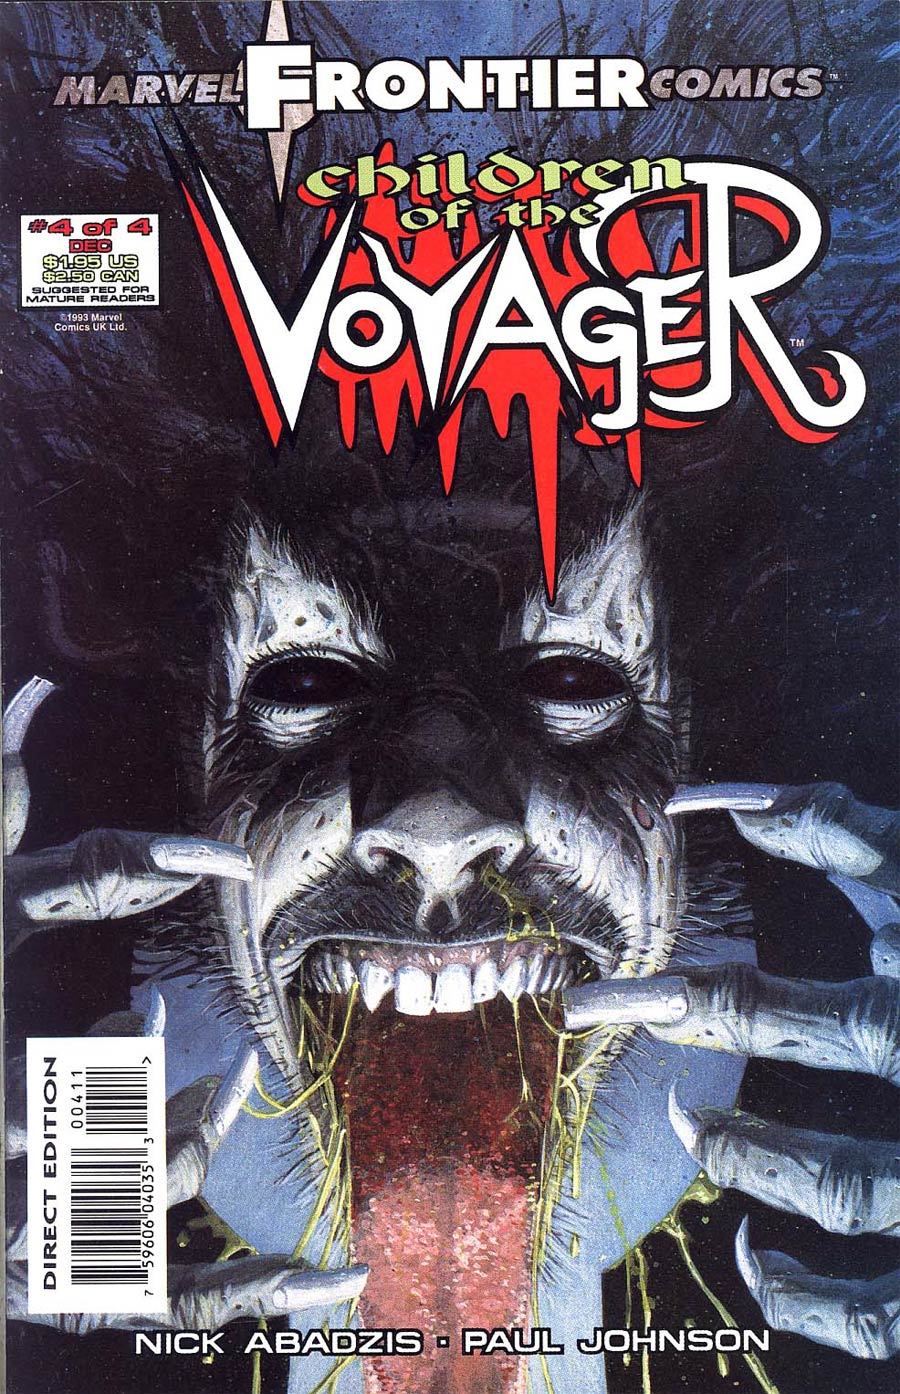 Children Of The Voyager #4